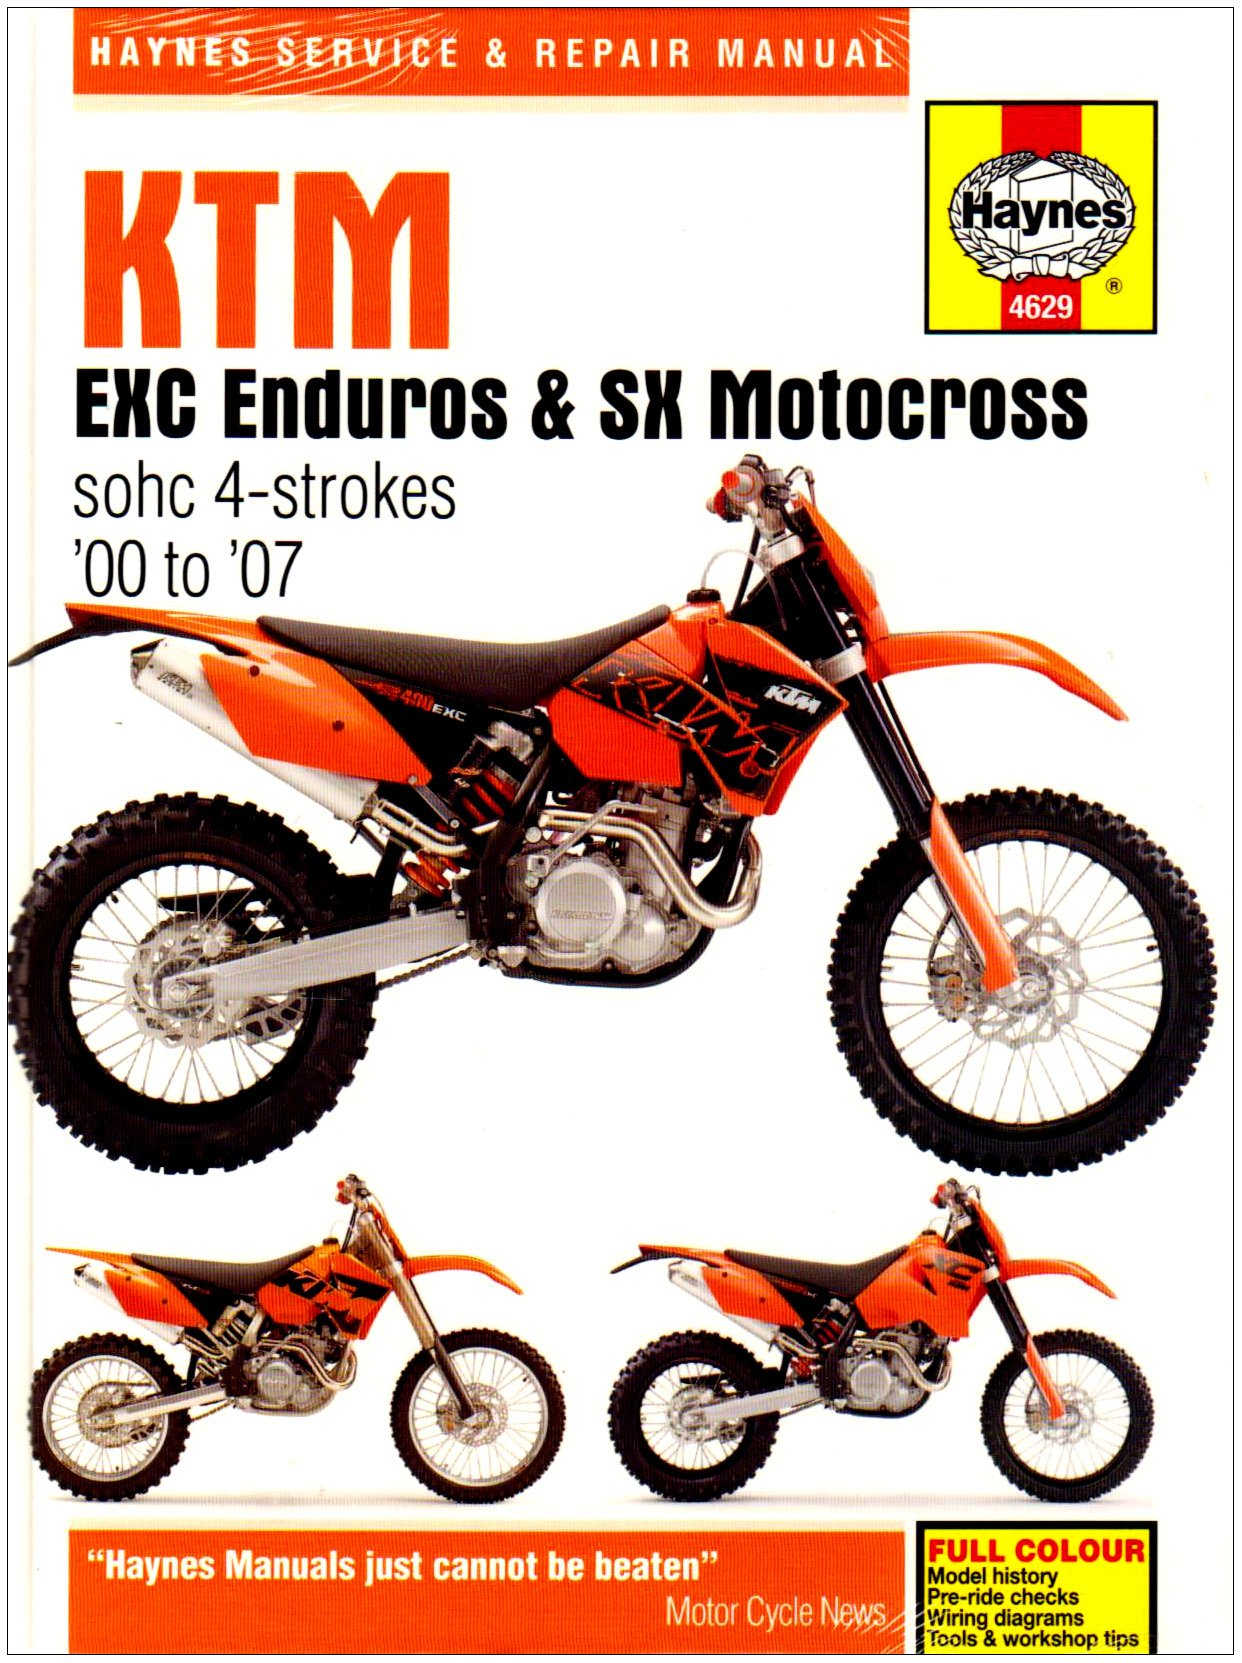 G 06 Ktm Exc Wiring Diagram Library Ltz 400 Starter Haynes Repair Manual 4629 Phil Mather 9781844256297 Amazoncom